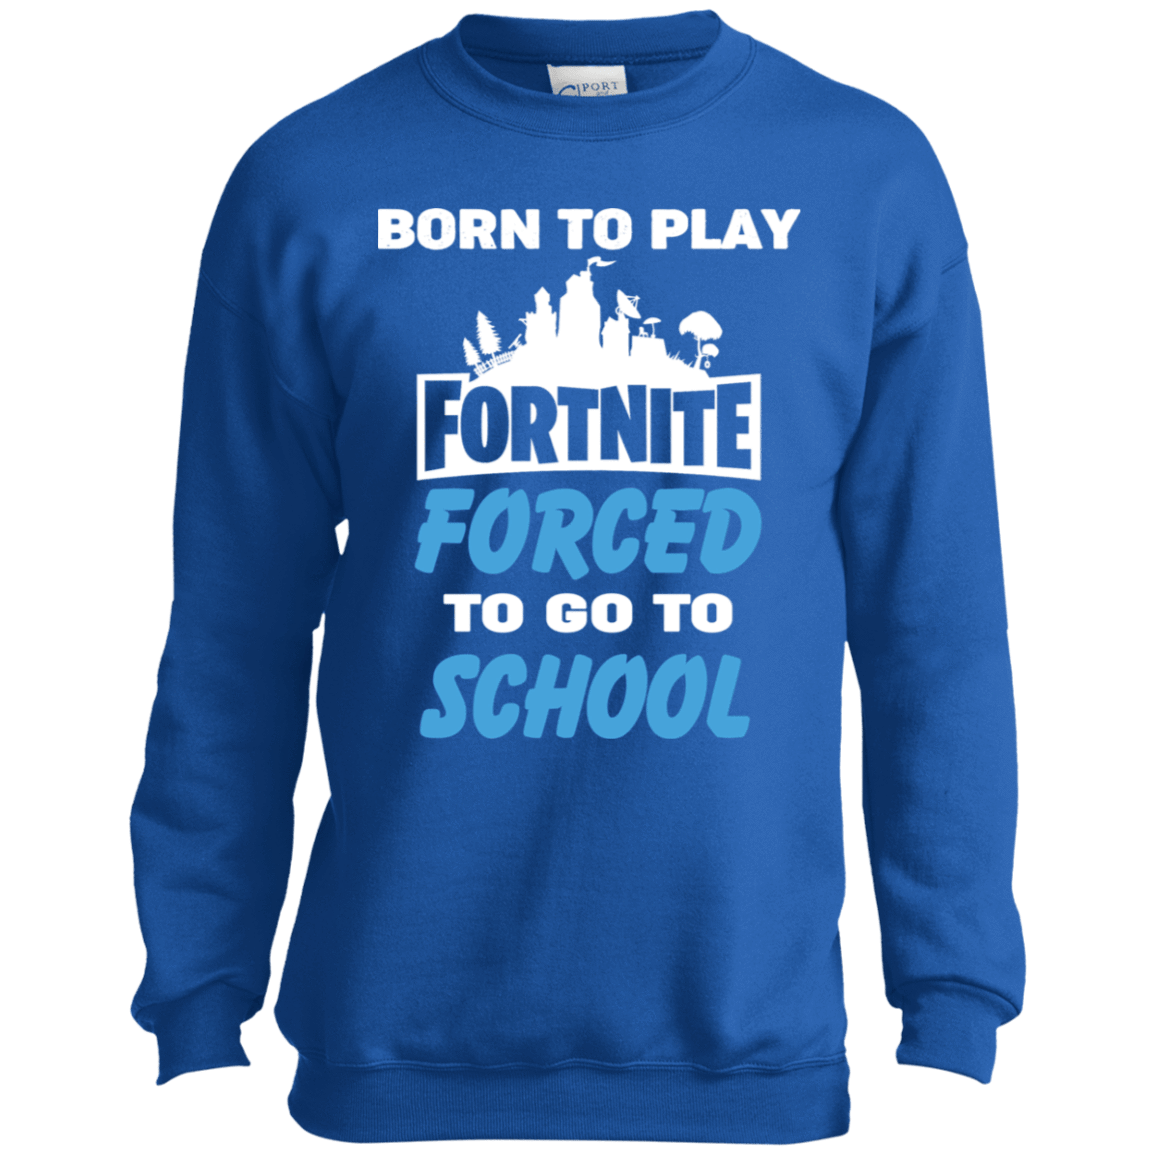 Born To Play Fortnite Forced To Go To School 58-330-74332977-1255 - Tee Ript